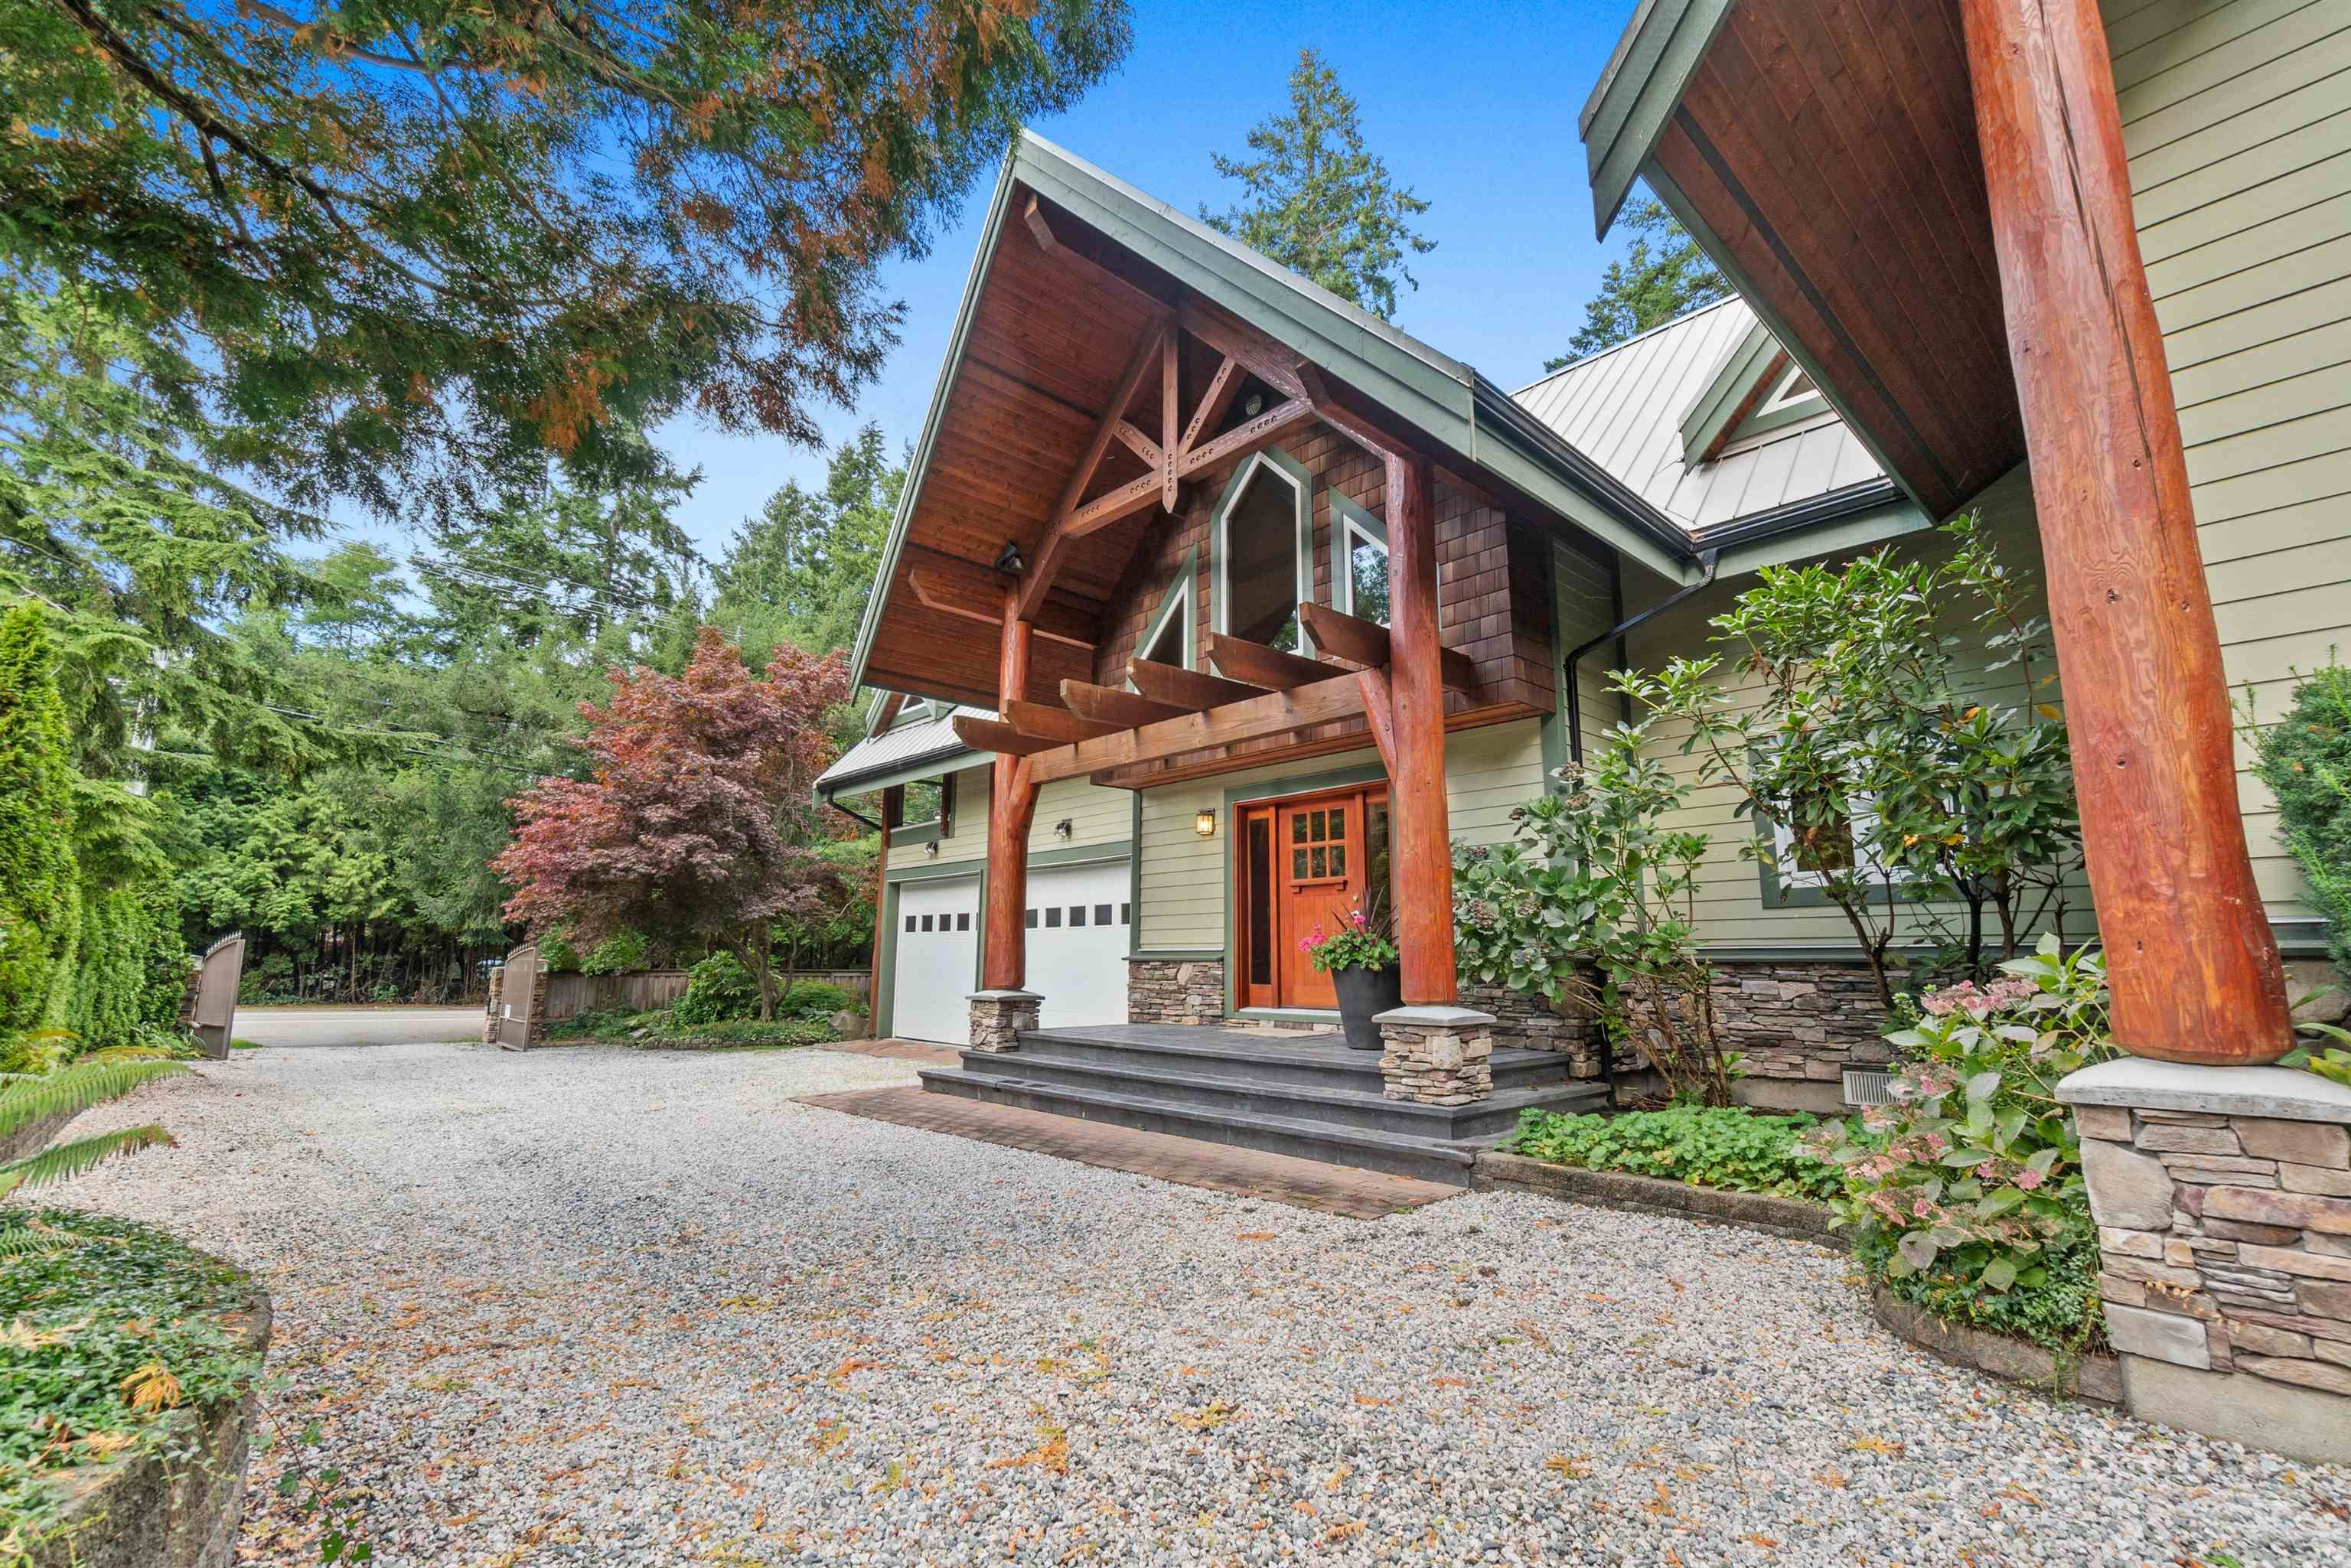 Main Photo: 2516 140 Street in Surrey: Elgin Chantrell House for sale (South Surrey White Rock)  : MLS®# R2624014